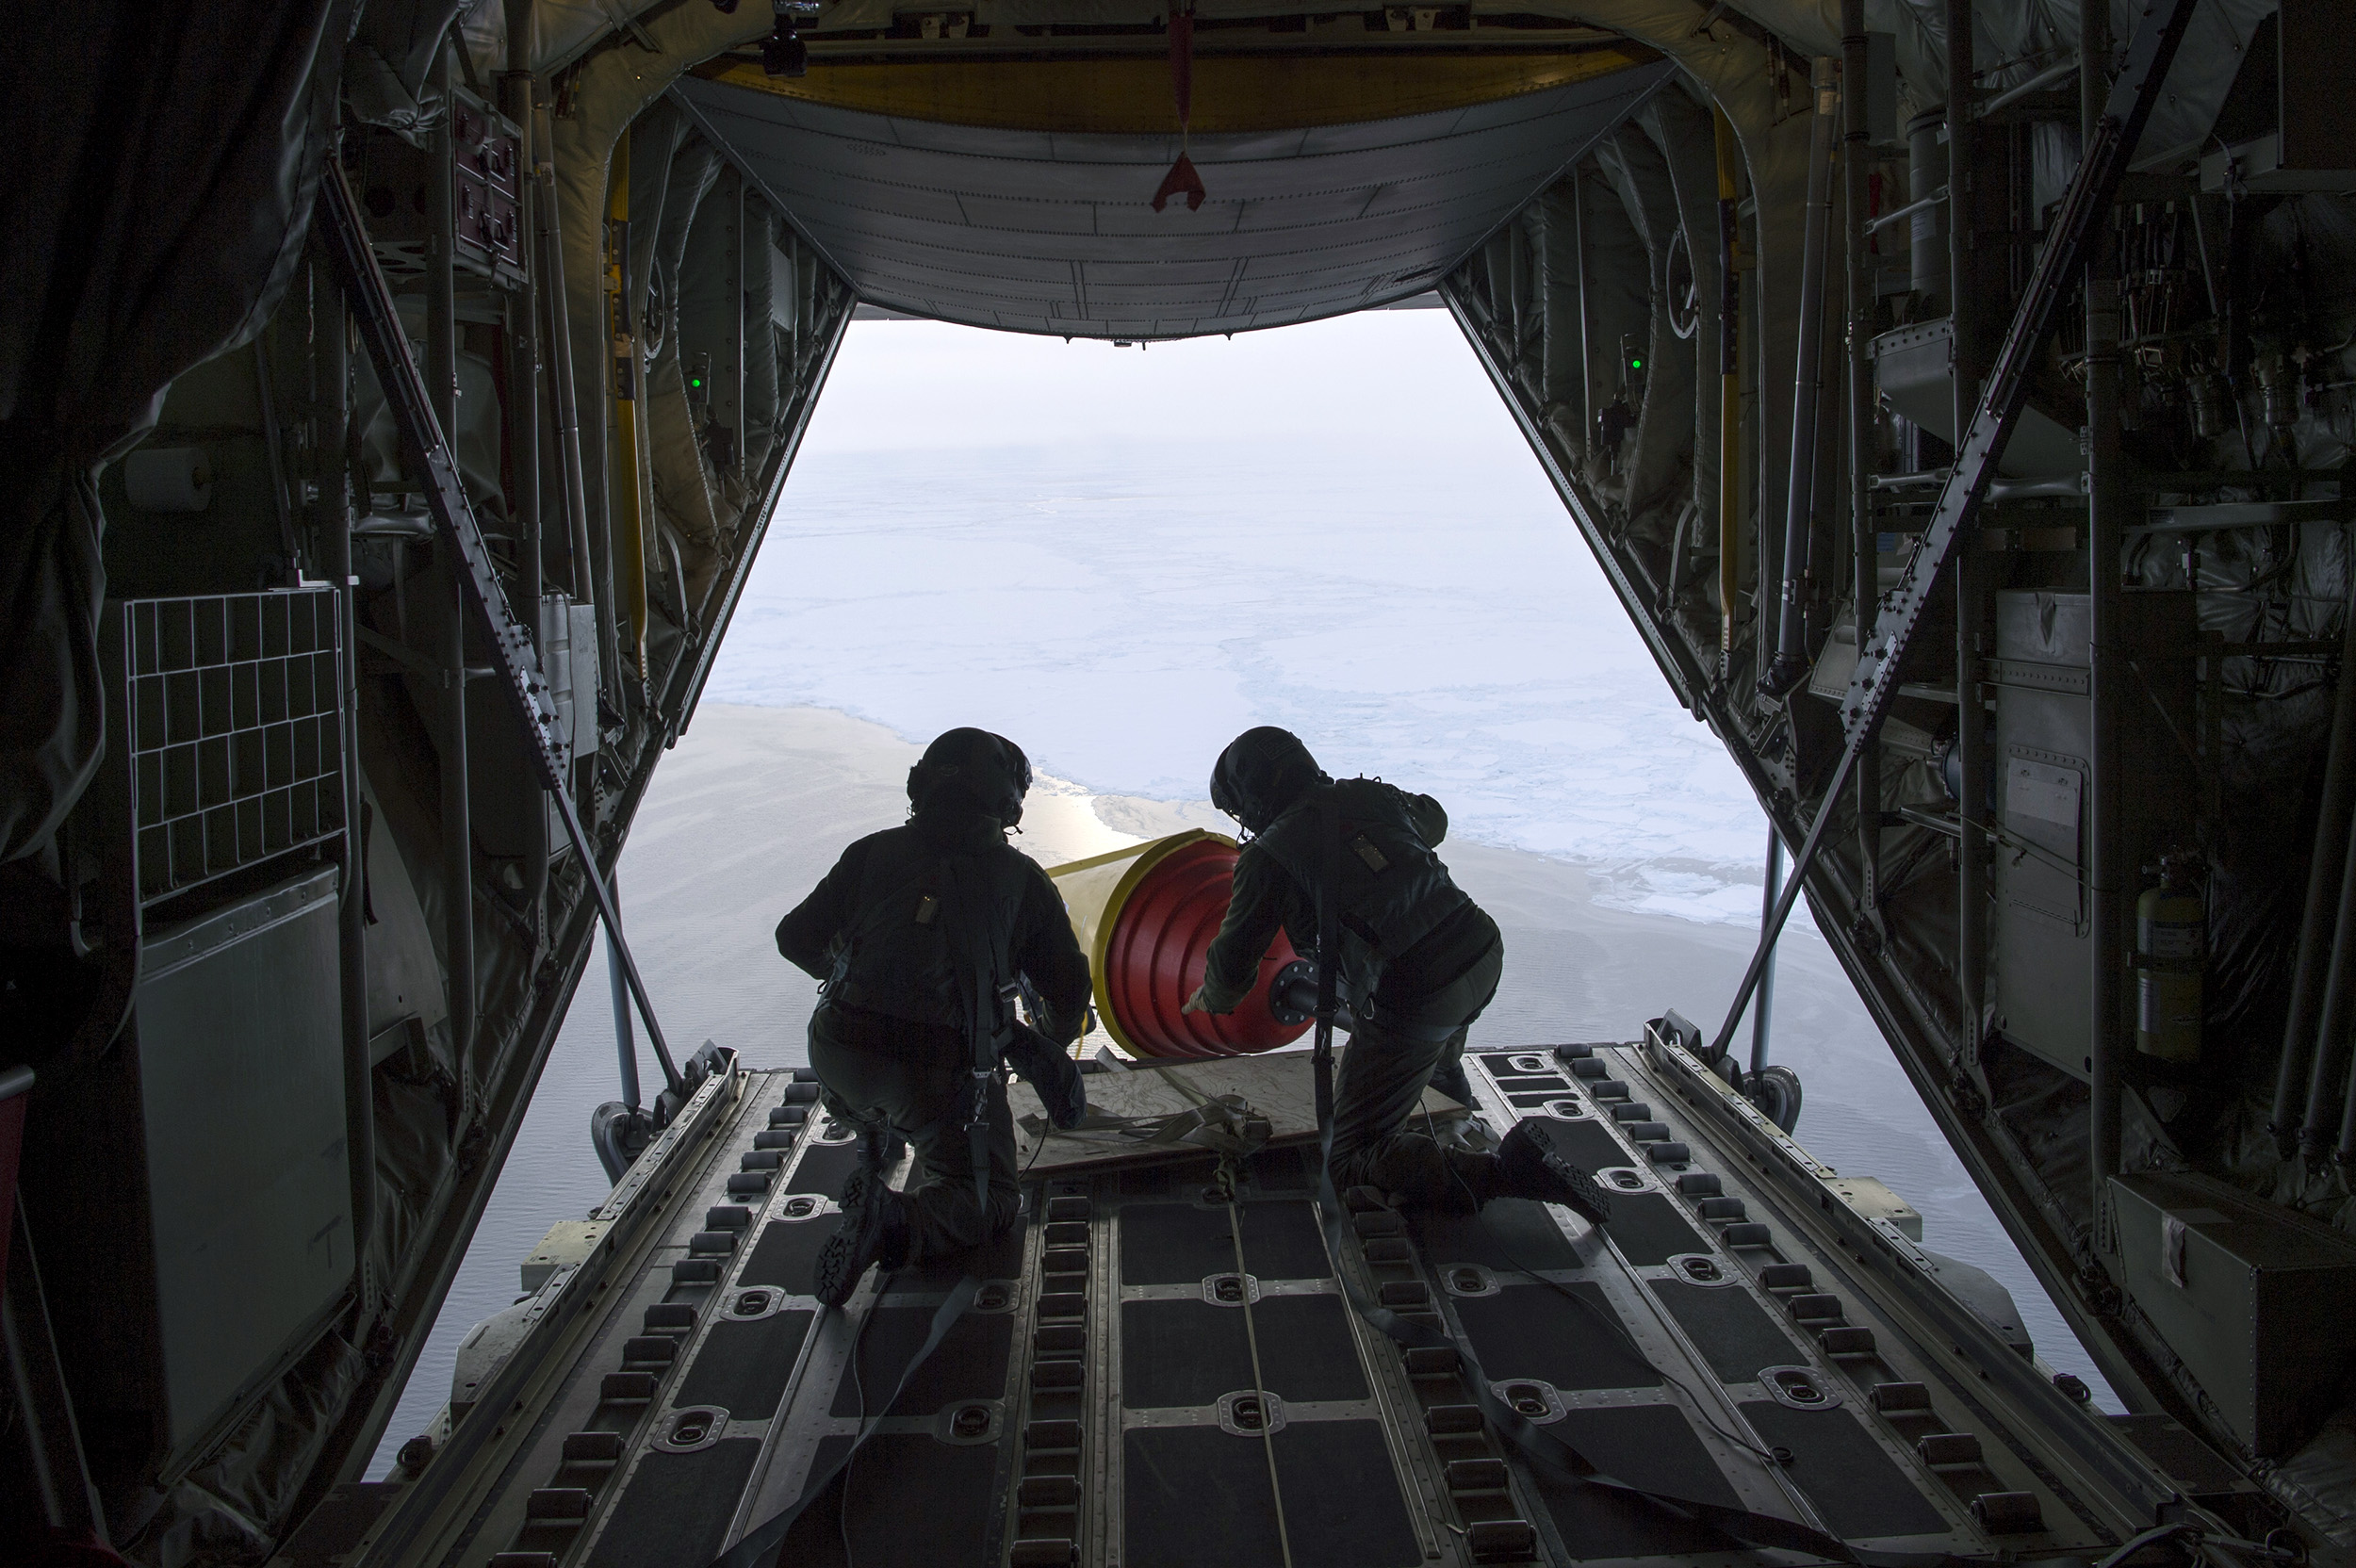 ARCTIC OCEAN  - An Air-Deployable Expendable Ice Buoy (AXIB) is deployed in the high Arctic near the North Pole from a Royal Danish Air Force C-130 aircraft operating out of Thule Air Force Base in Greenland, as part of the International Arctic Buoy Program (IABP). The IABP is a conglomeration of global participants that maintain a network of drifting buoys in the Arctic Ocean that provide meteorological and oceanographic data for real-time operational requirements and research purposes.